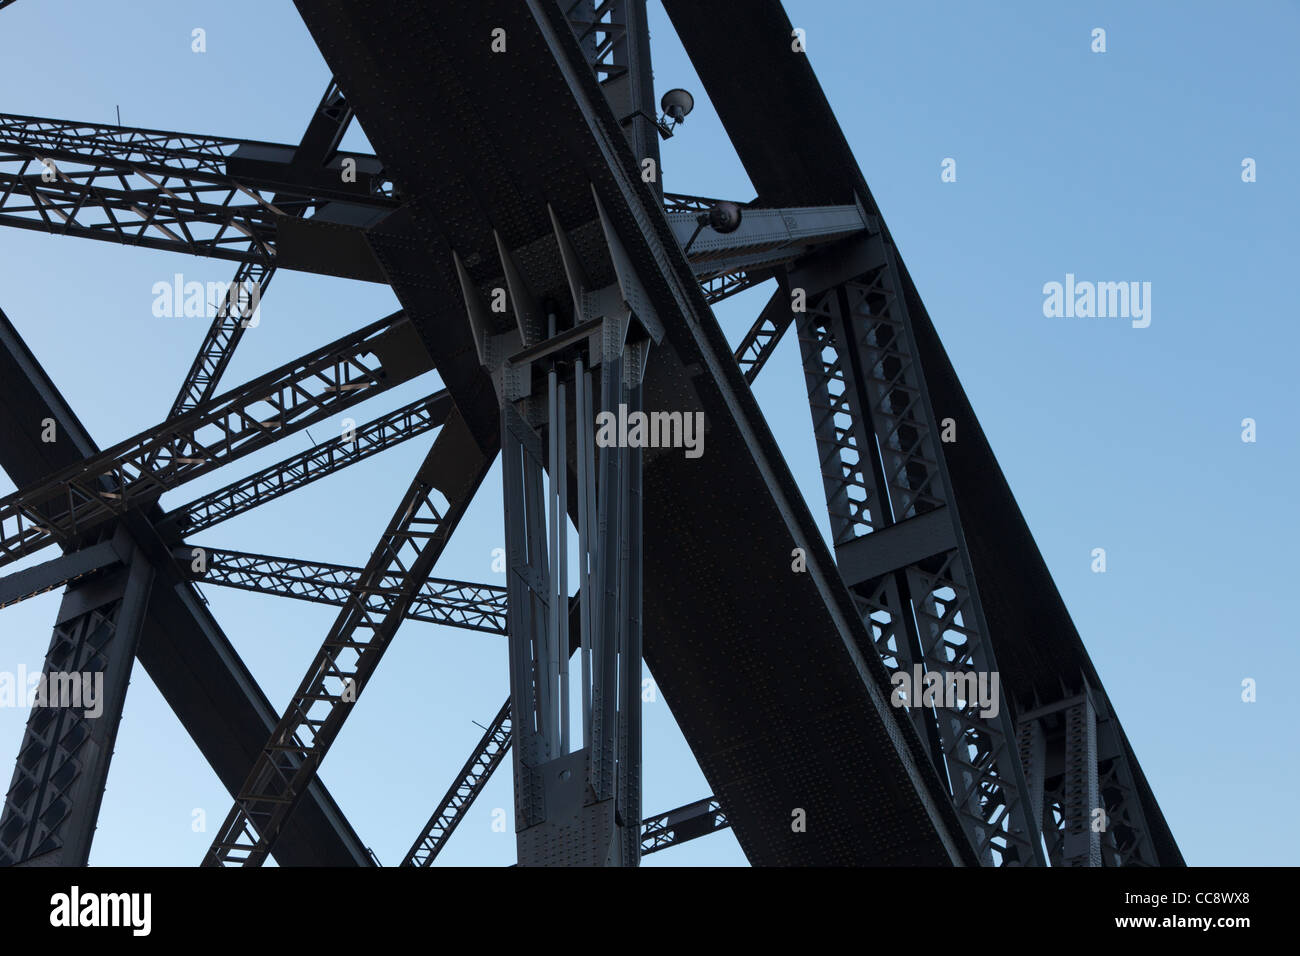 Metalwork of the Sydney Harbour Bridge - Stock Image